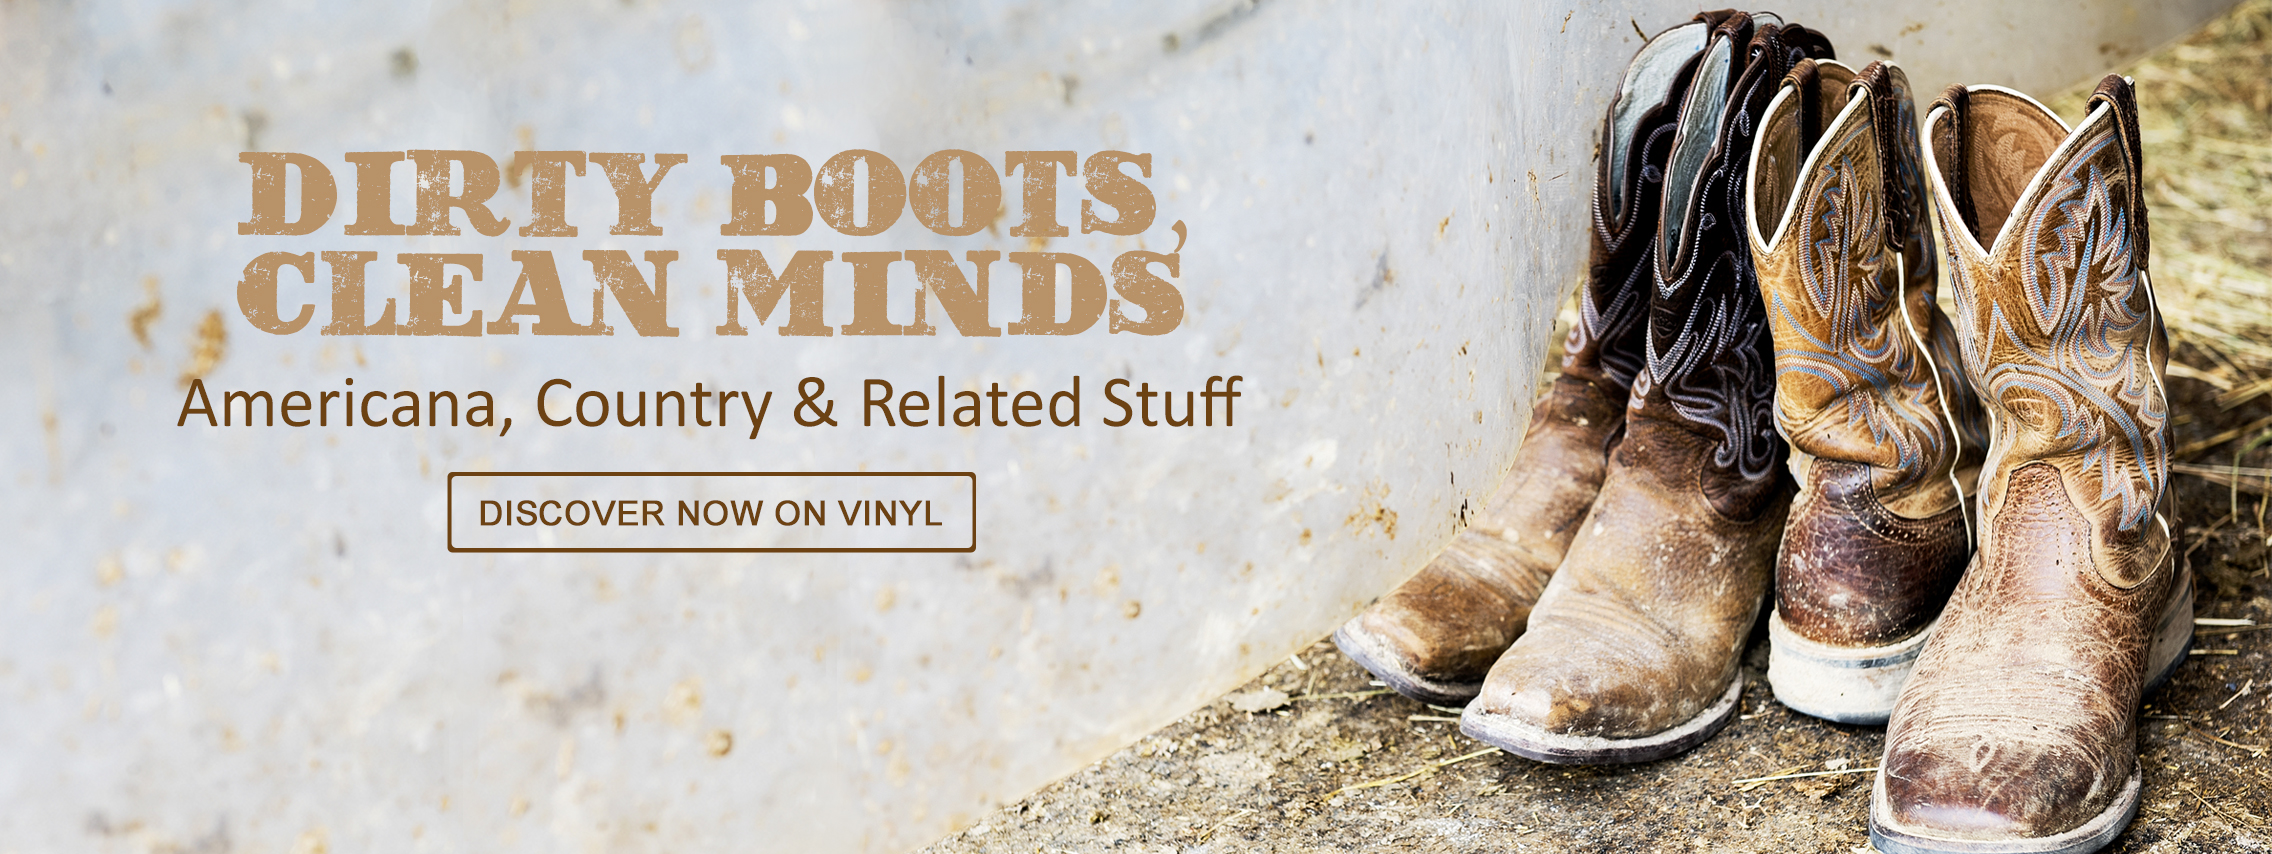 Dirty Boots, Clean Minds